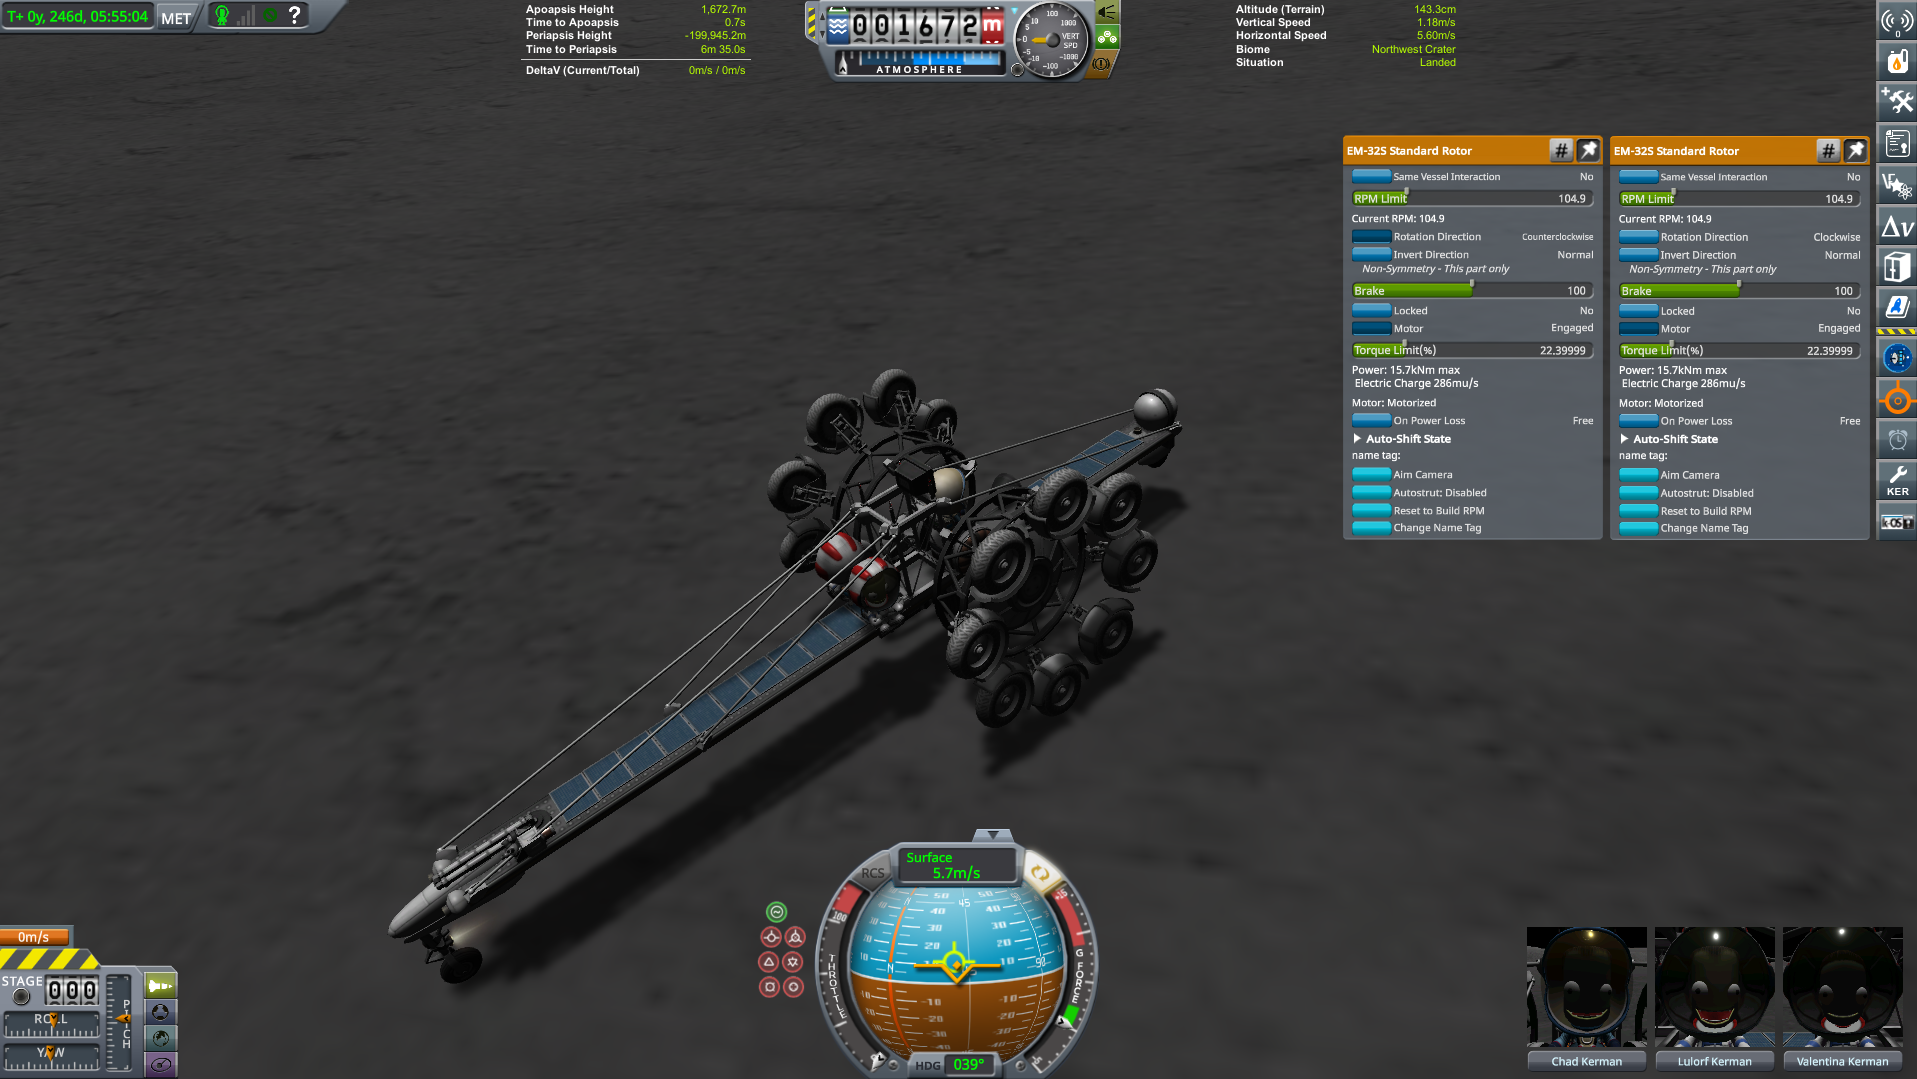 rover_1.png